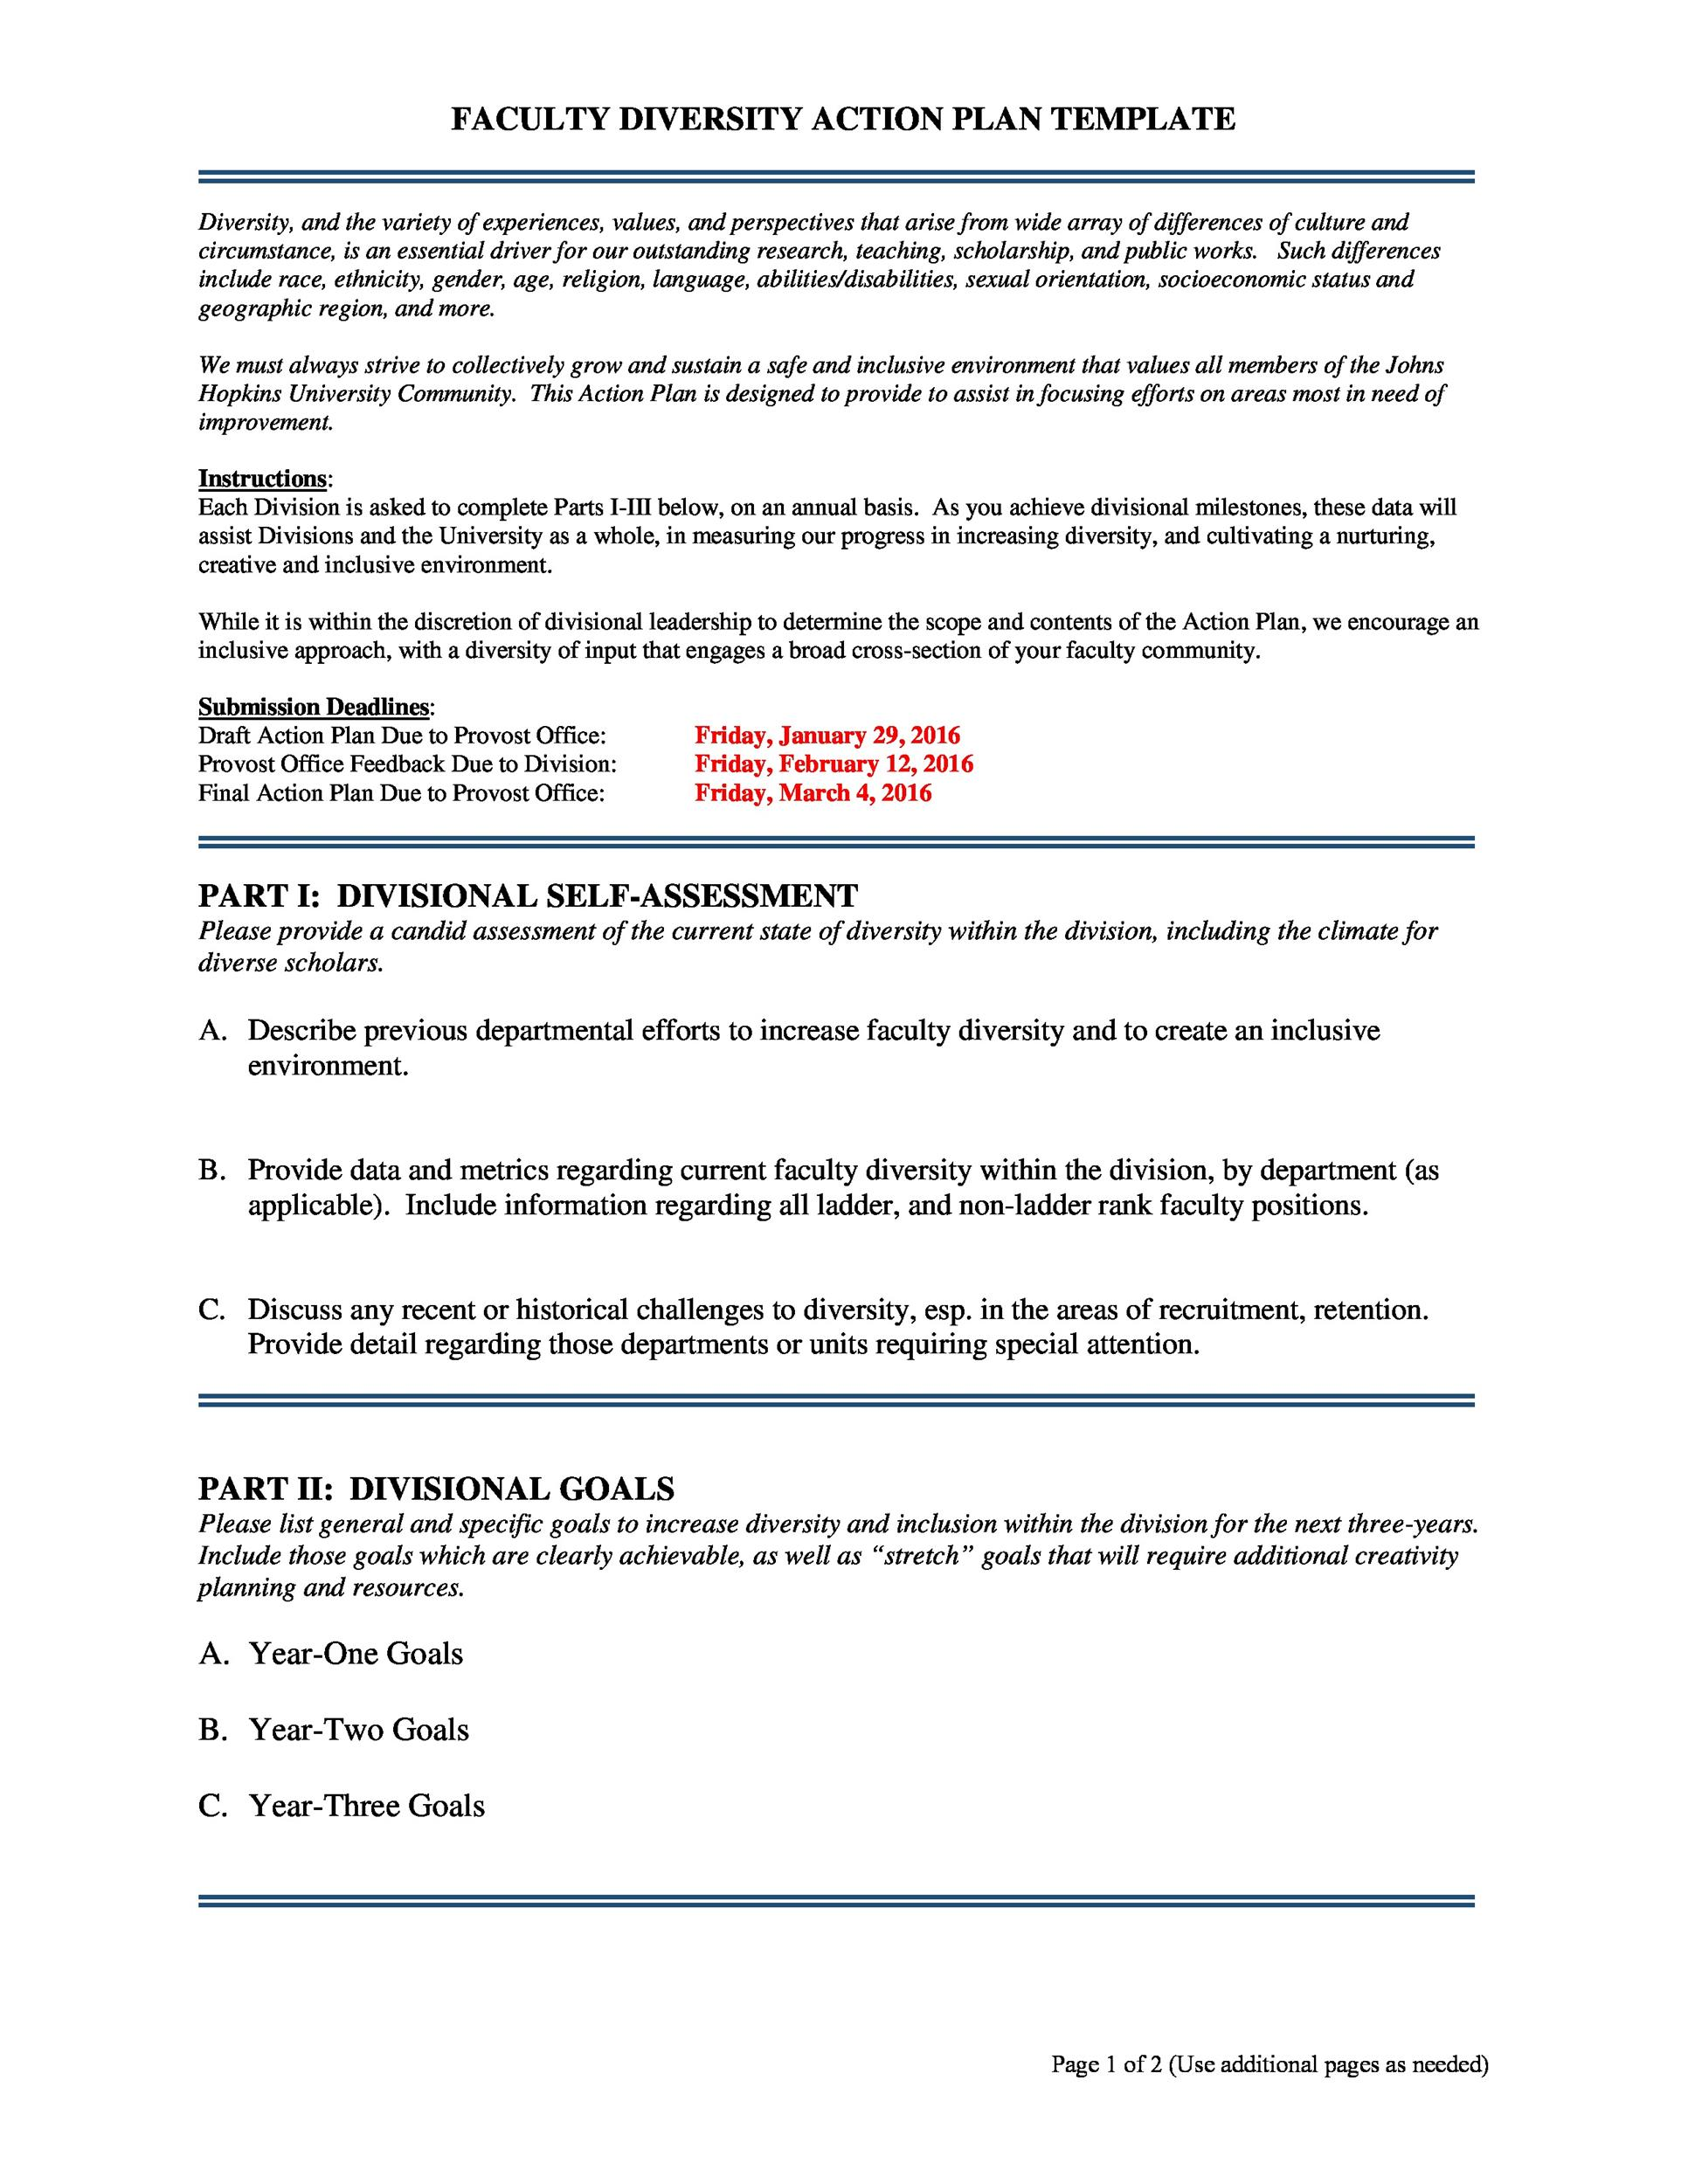 45 free action plan templates corrective emergency for Diversity action plan template